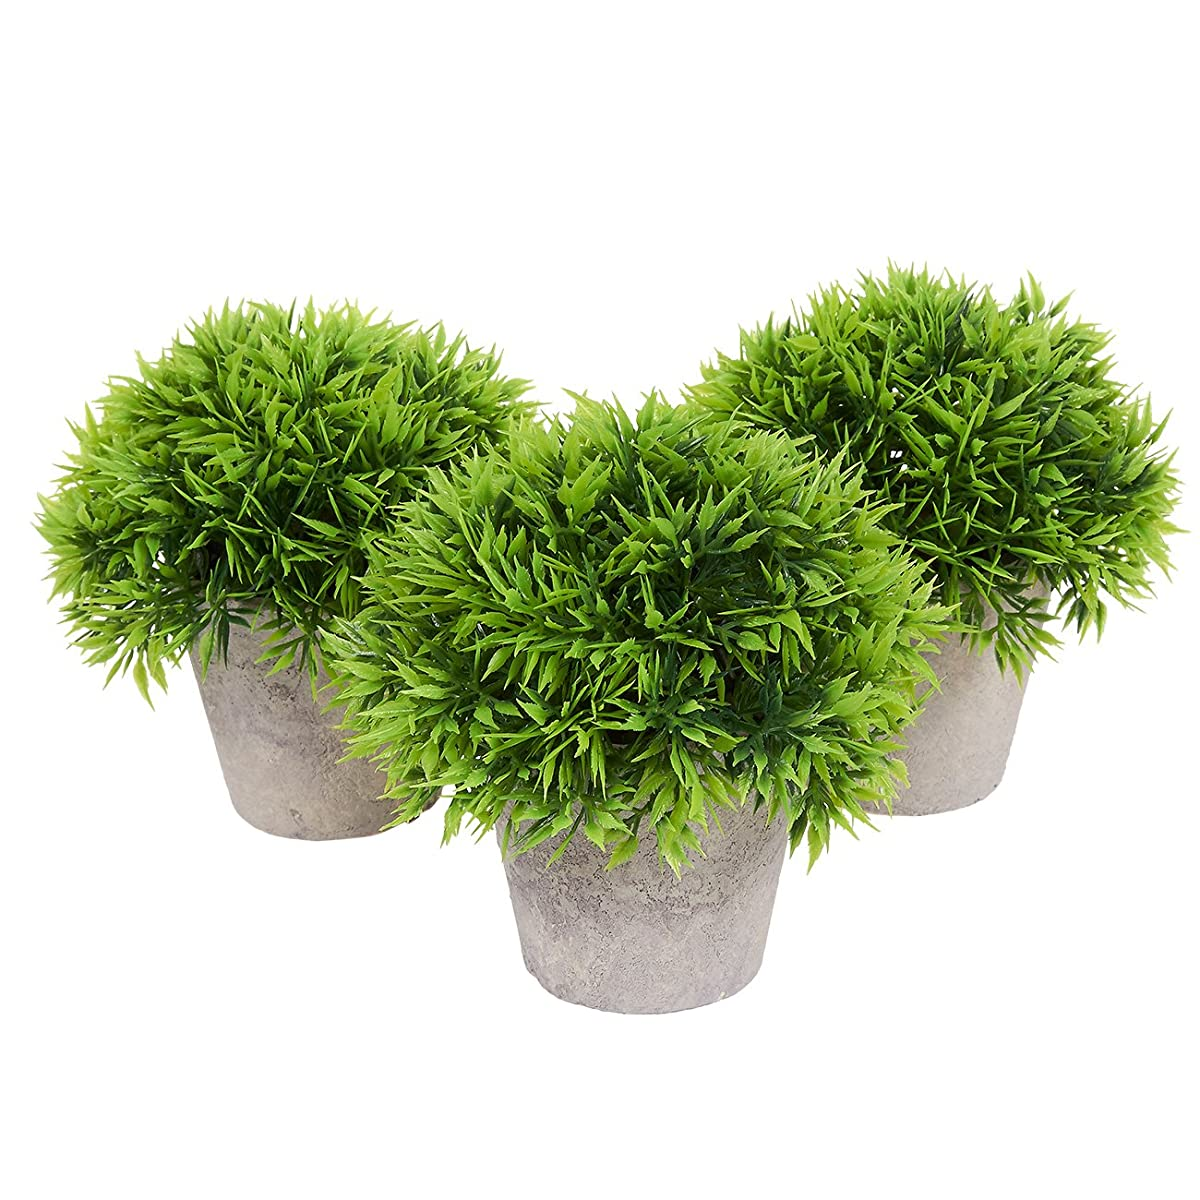 Fake Plant Decoration   Set Of 3 Potted Artificial House Plants   Fake Plant  Decor, Green Decorative Small ...